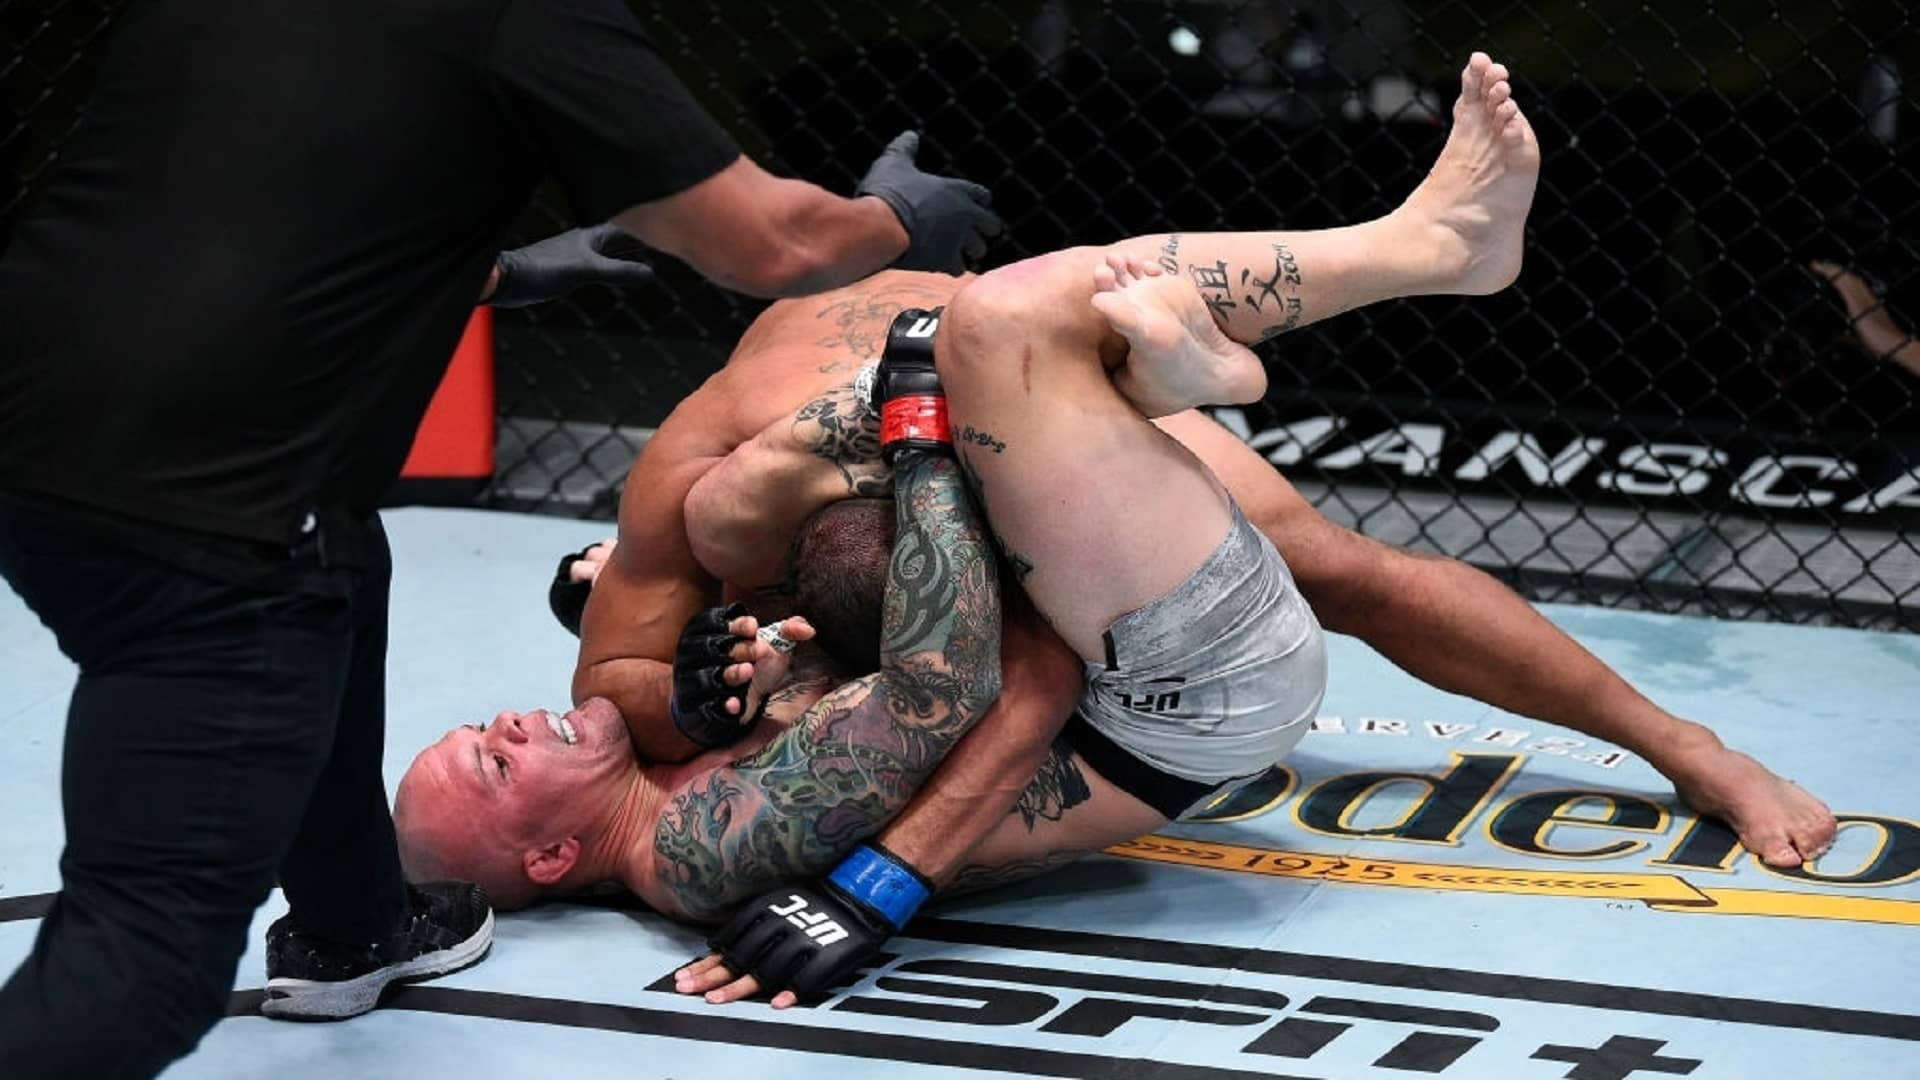 https://lockerroom.in/blog/view/UFC-Vegas-15-Full-Results